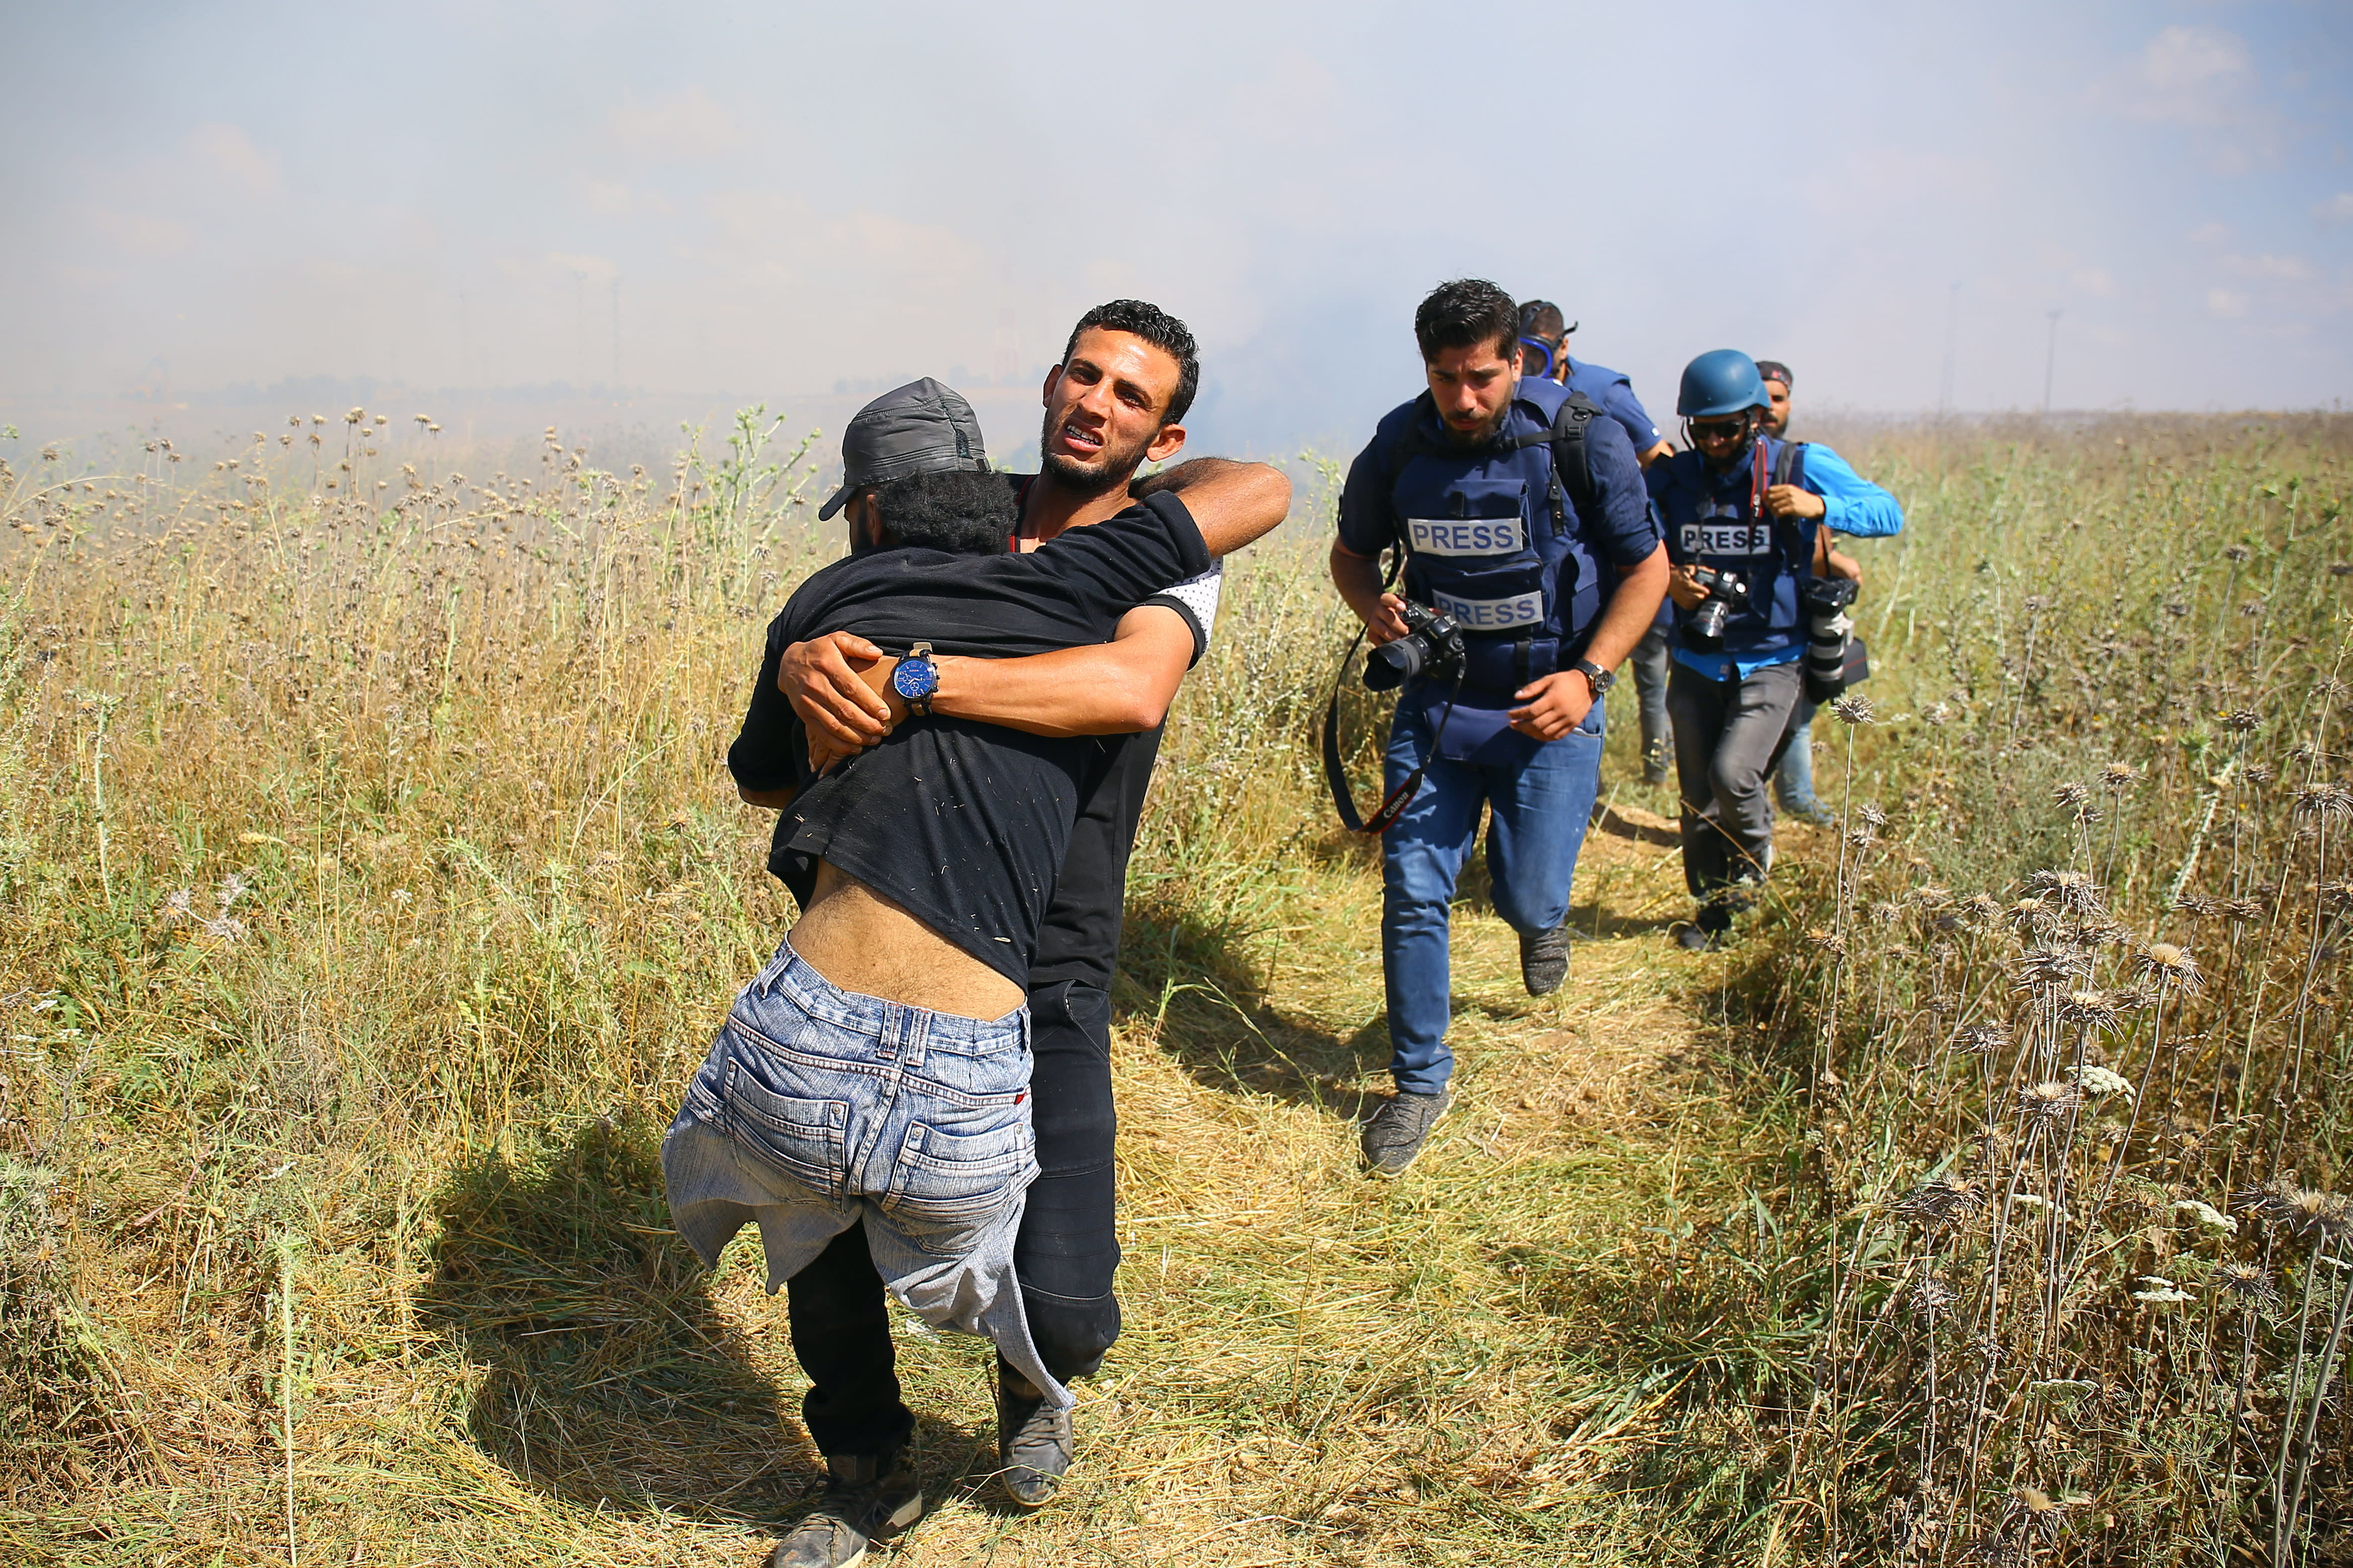 Palestinian demonstrator Ibrahim Abu Thurayeh is carried during clashes with Israeli soldiers following a protest near the border fence east of Gaza City, December 15, 2017. (AFP Photo)